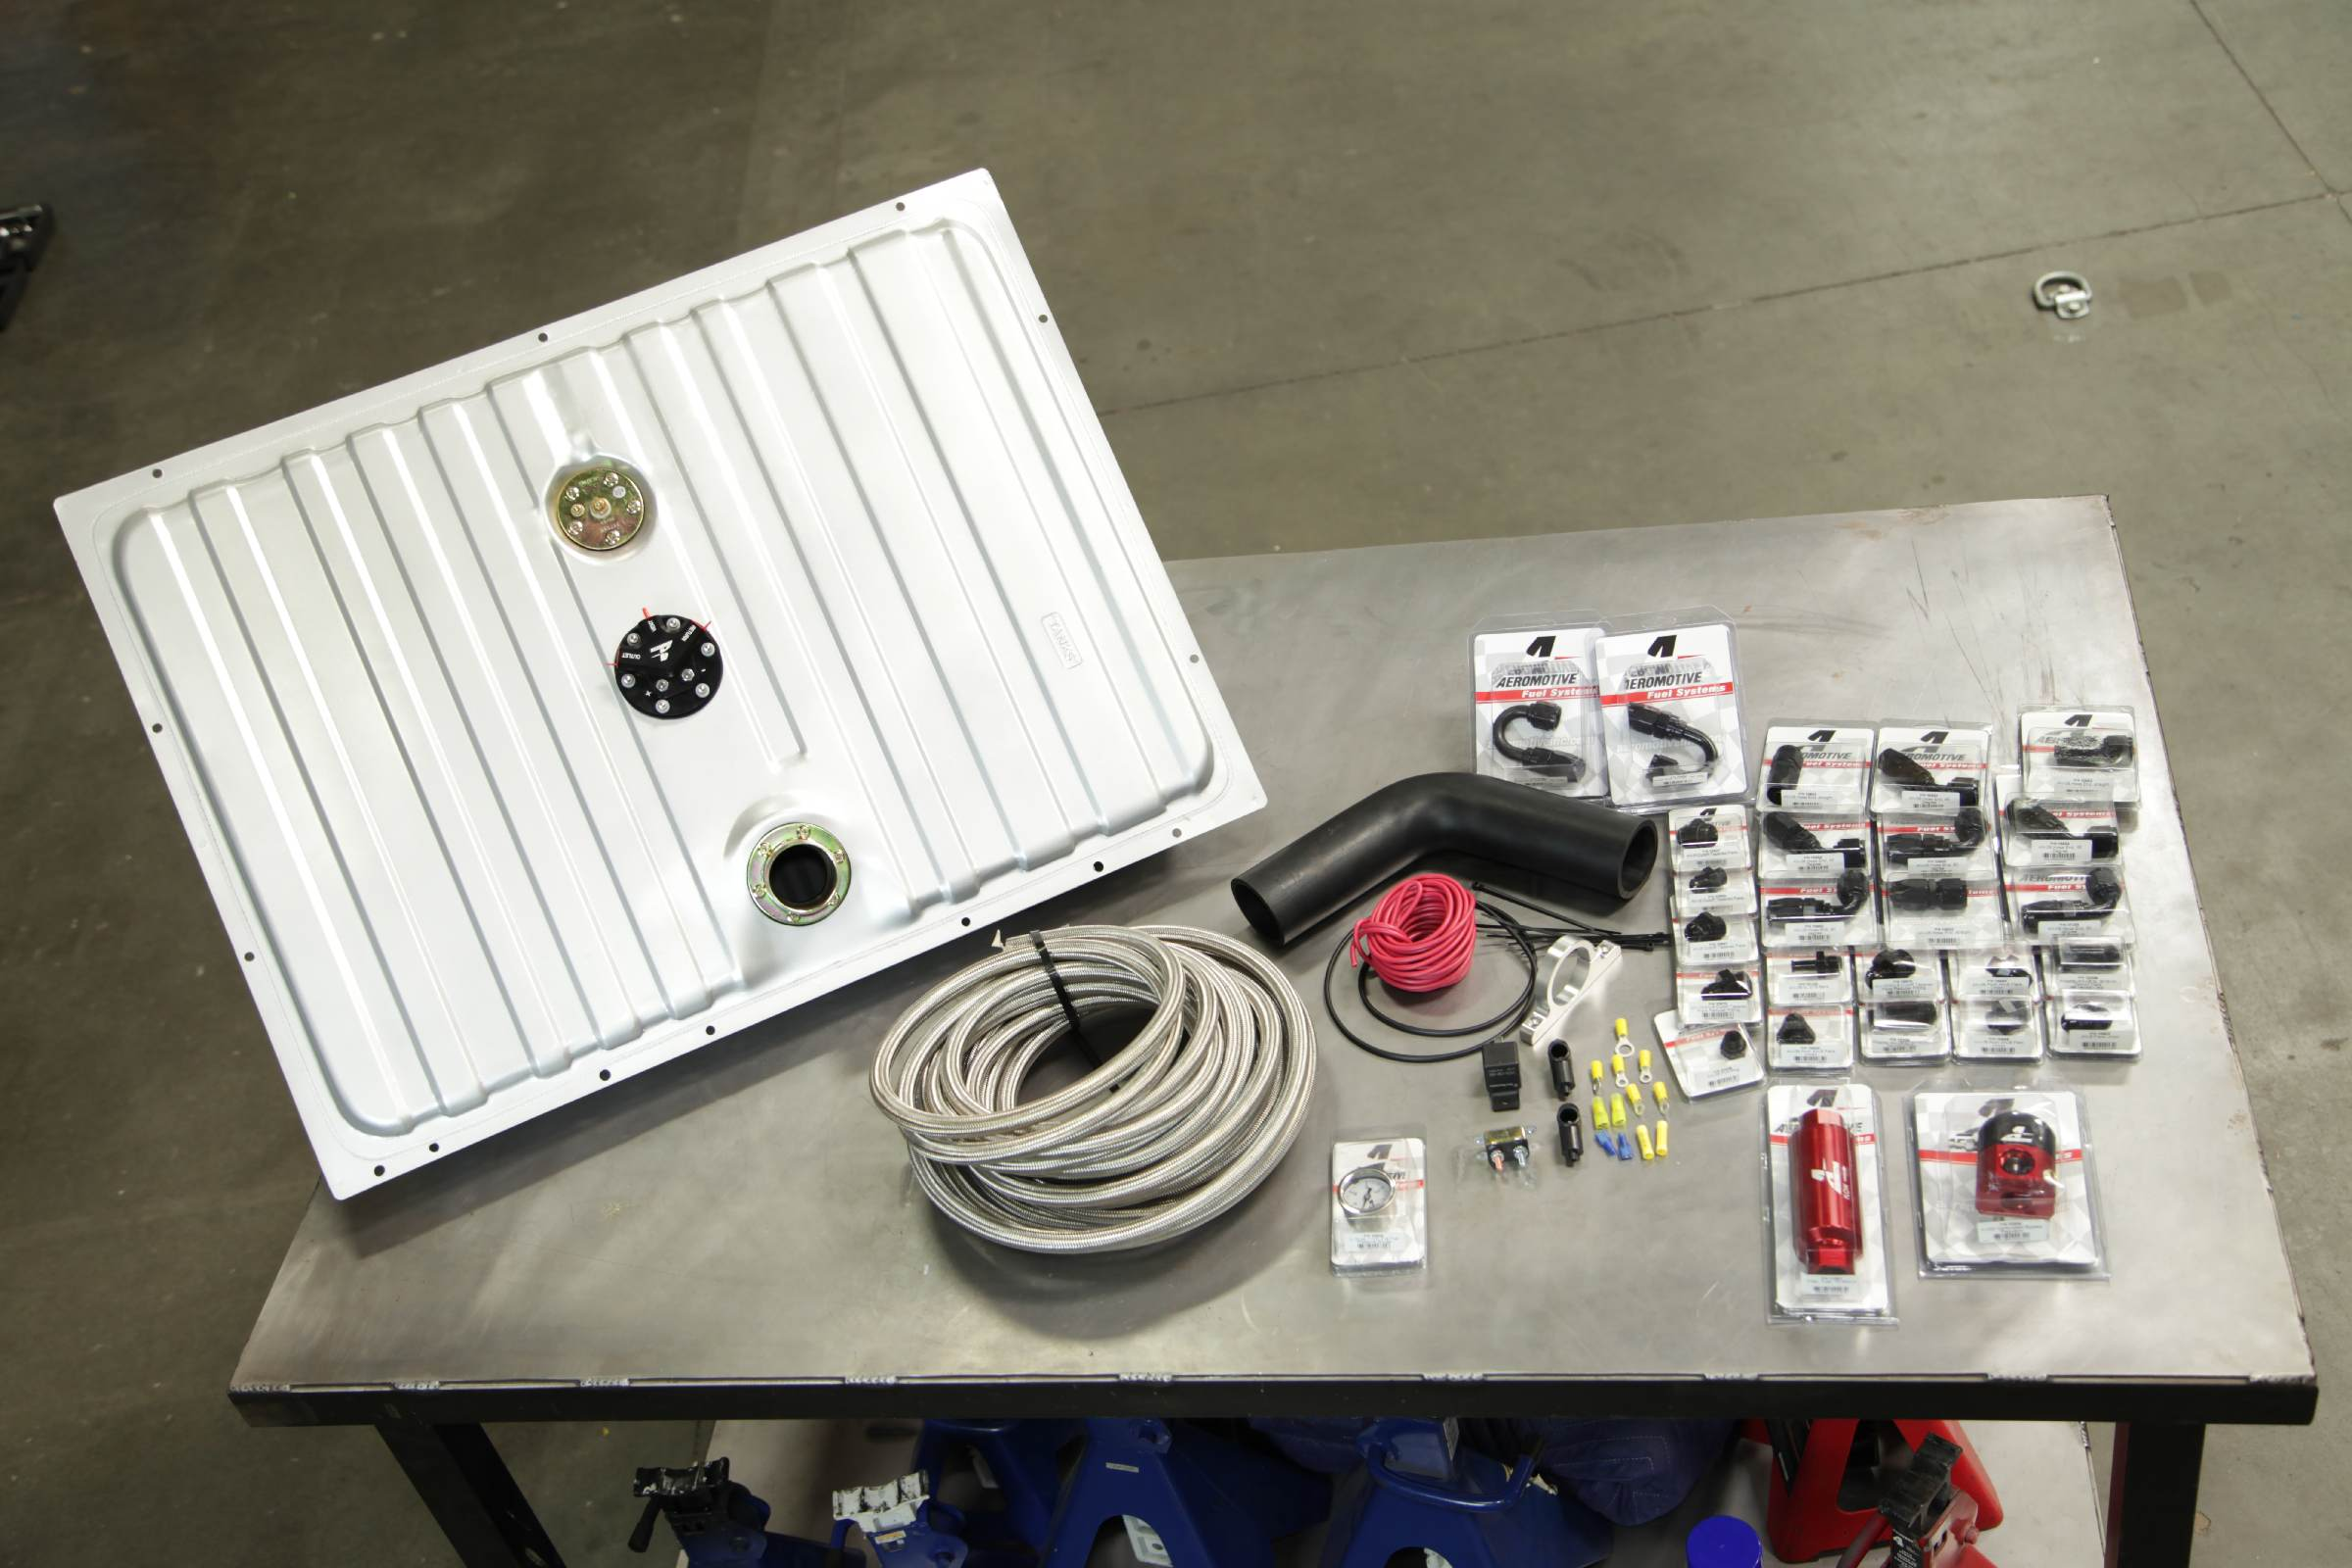 Tech Aeromotive Stealth Fuel System For First Generation Mustangs 66 Mustang Filter Location Everything Needed The Conversion Including New Tank And Pump Braided Hose Fittings Pressure Regulator